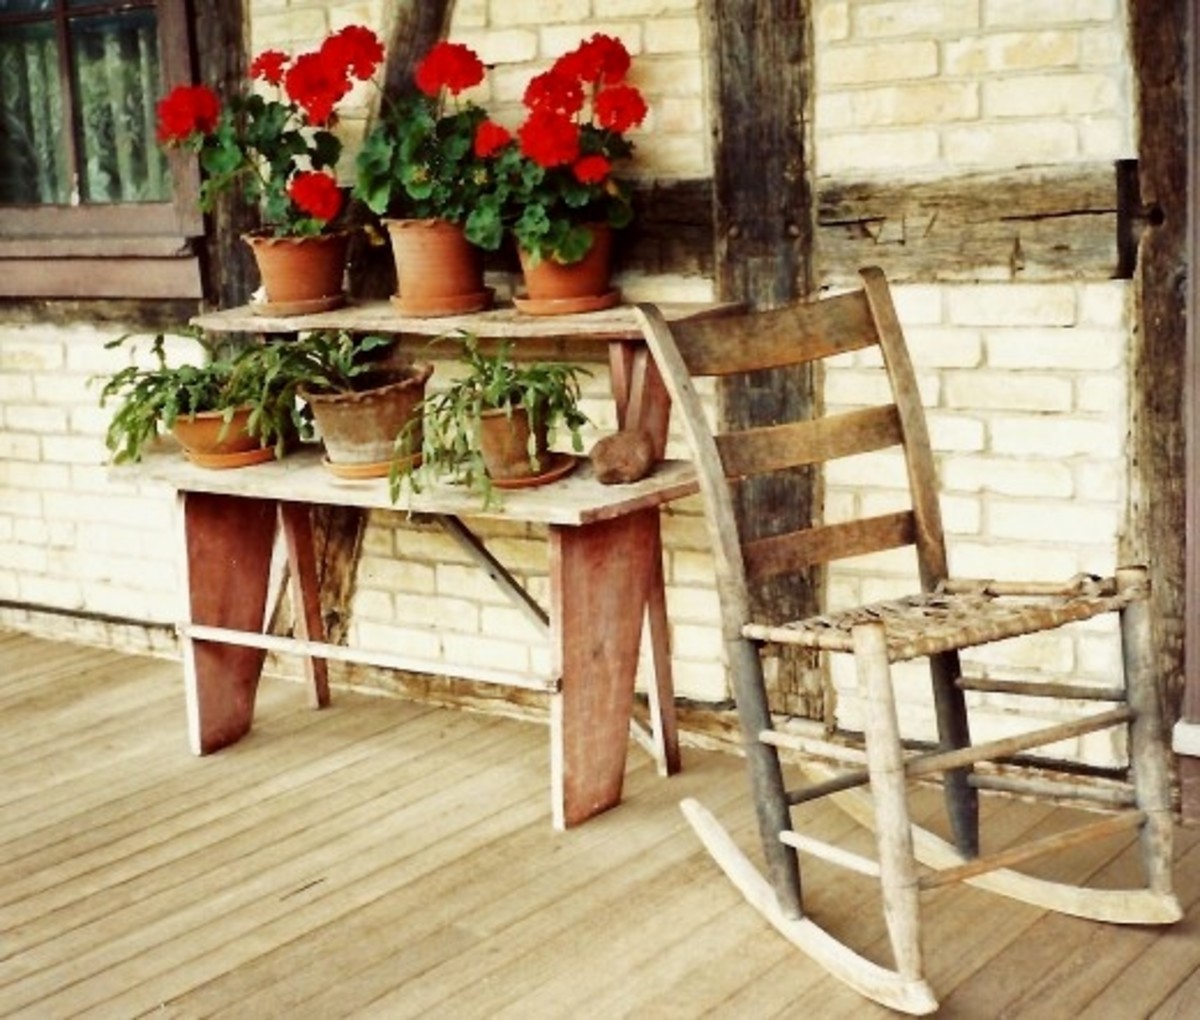 On the front porch of the Koepsell House at Old World Wisconsin